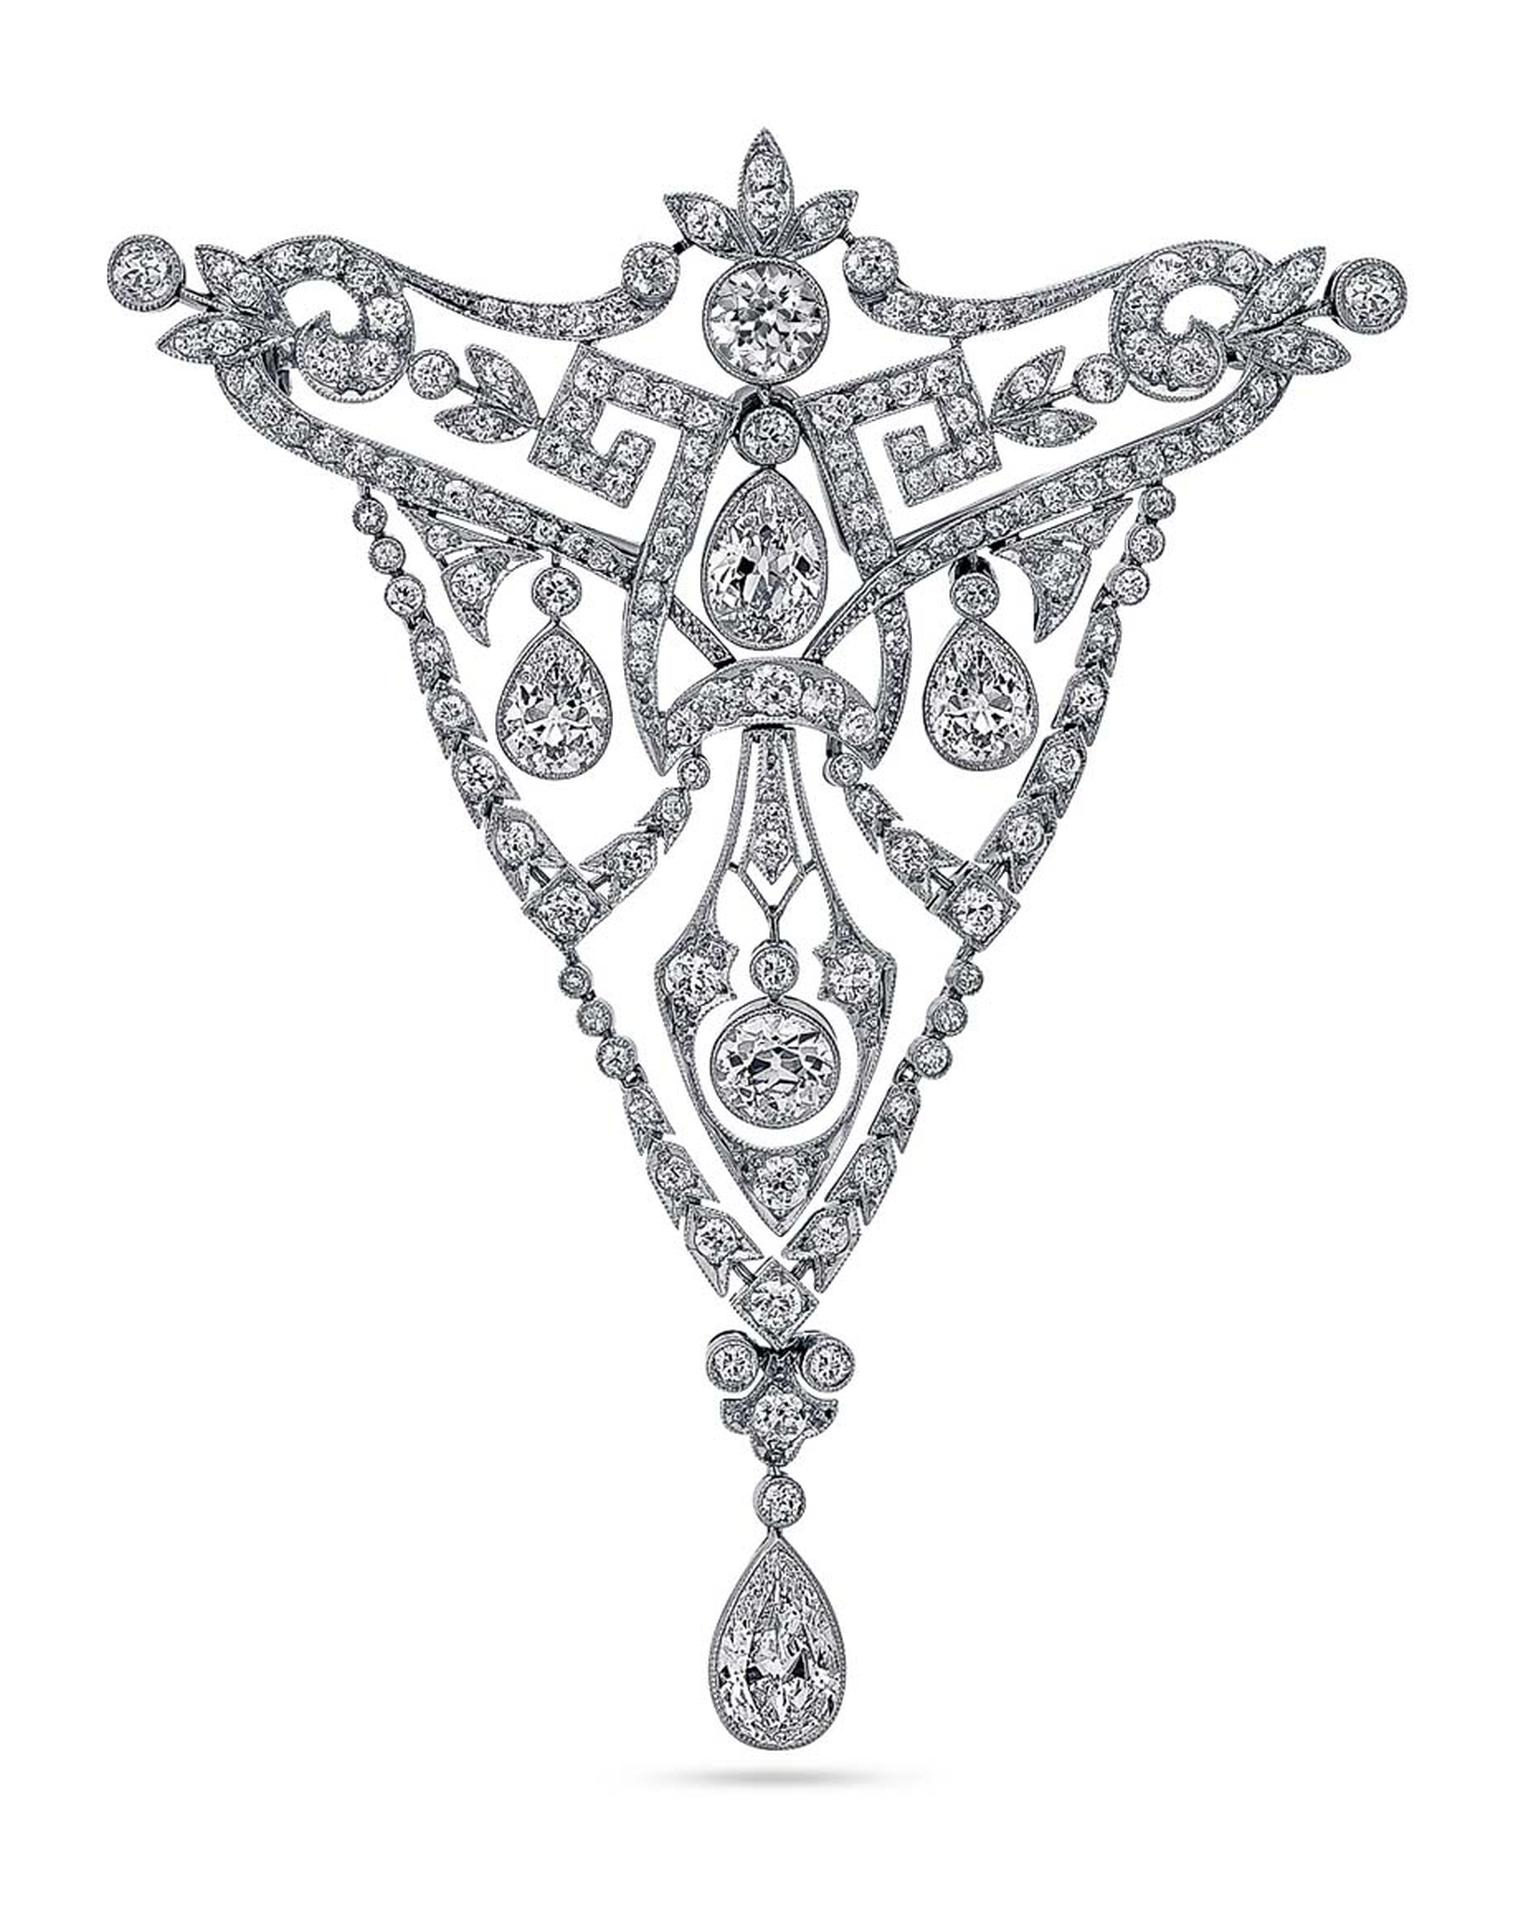 Estate Fabergé platinum and diamond brooch, originally commissioned circa 1907 by the Imperial Family of Russia as a gift for Emperor Wilhelm of Germany, sold by Greenwich jeweller Steven Fox.